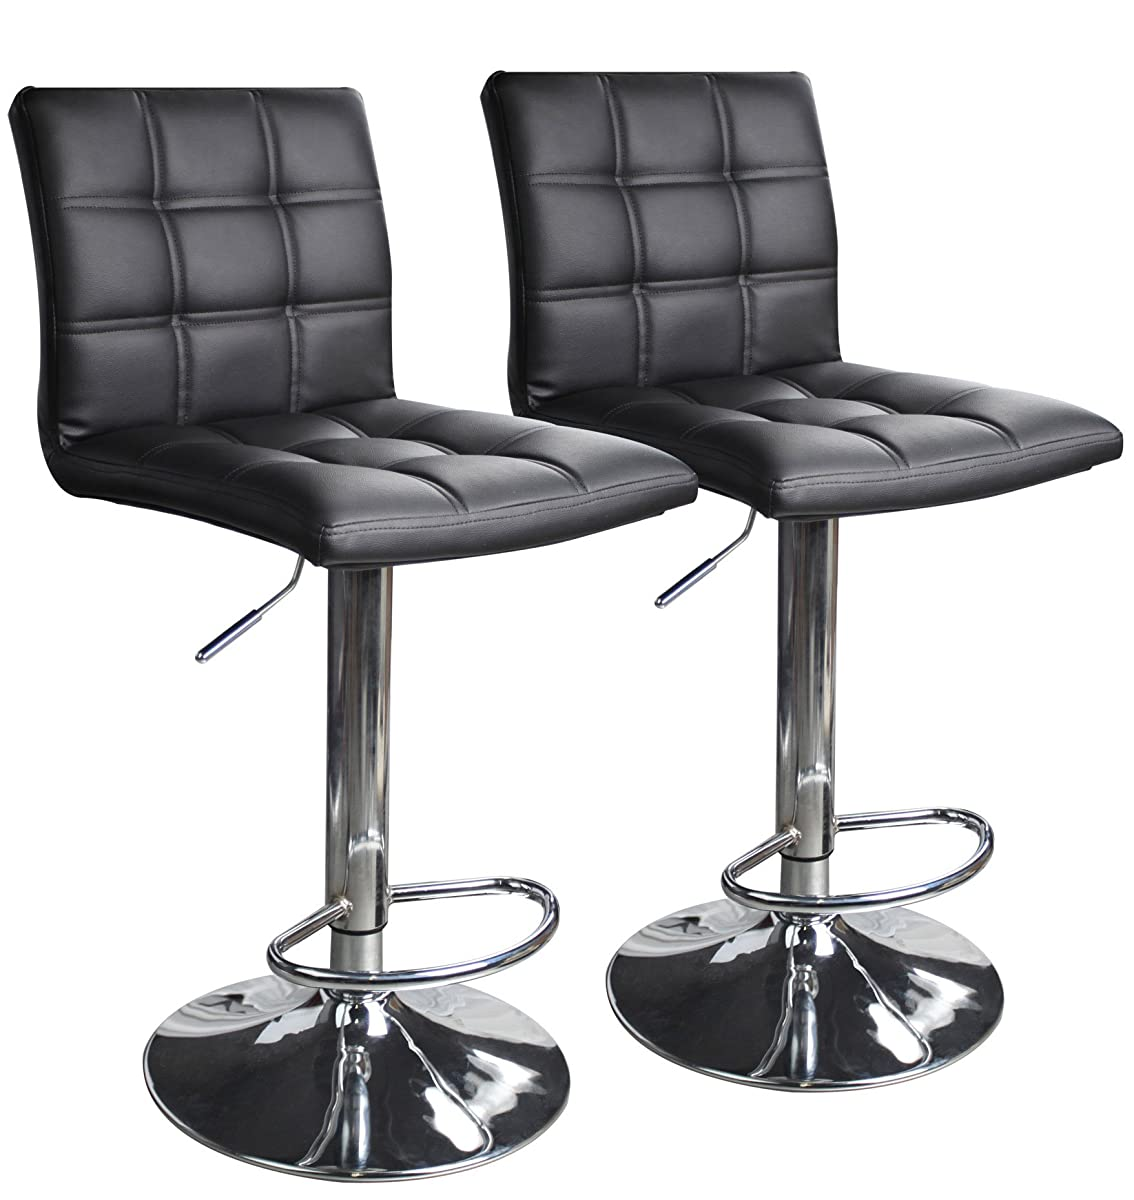 Modern Square Leather Adjustable Bar Stools With Back Set Of 2 Counter Height Swivel Stool By